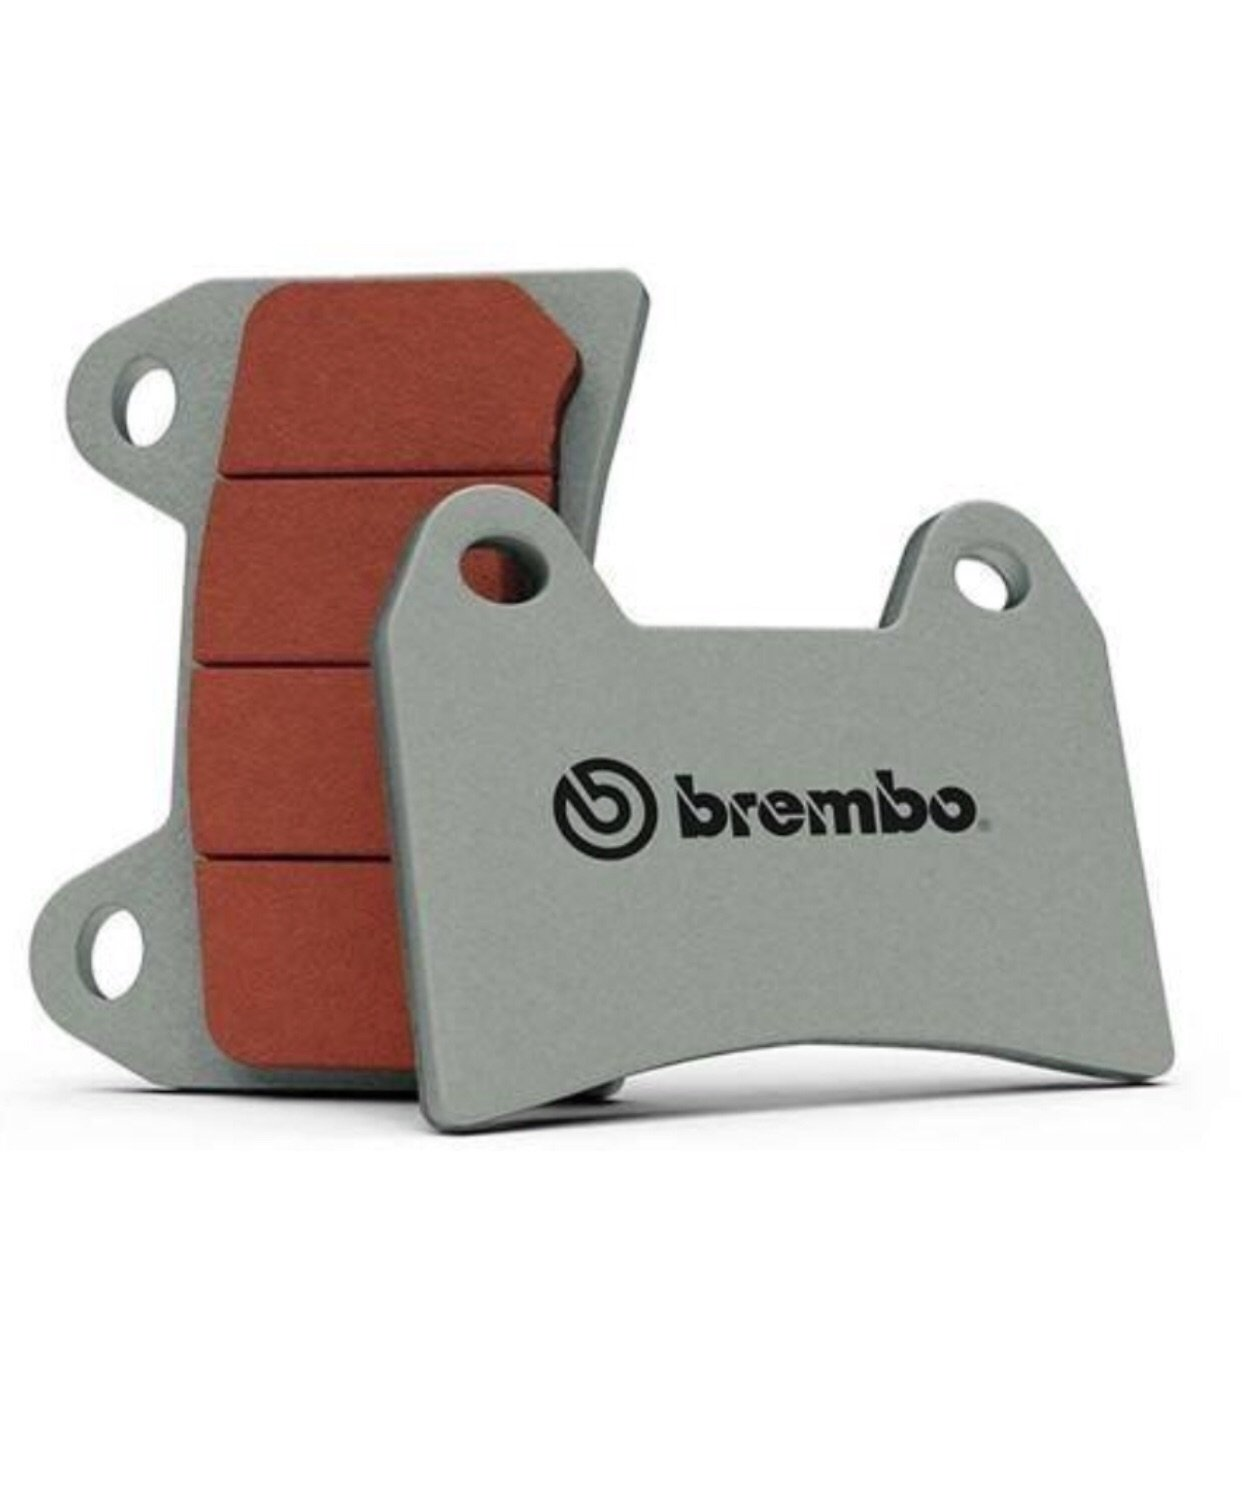 Yamaha, Brake Pads, Brembo - Race and Trackday Parts